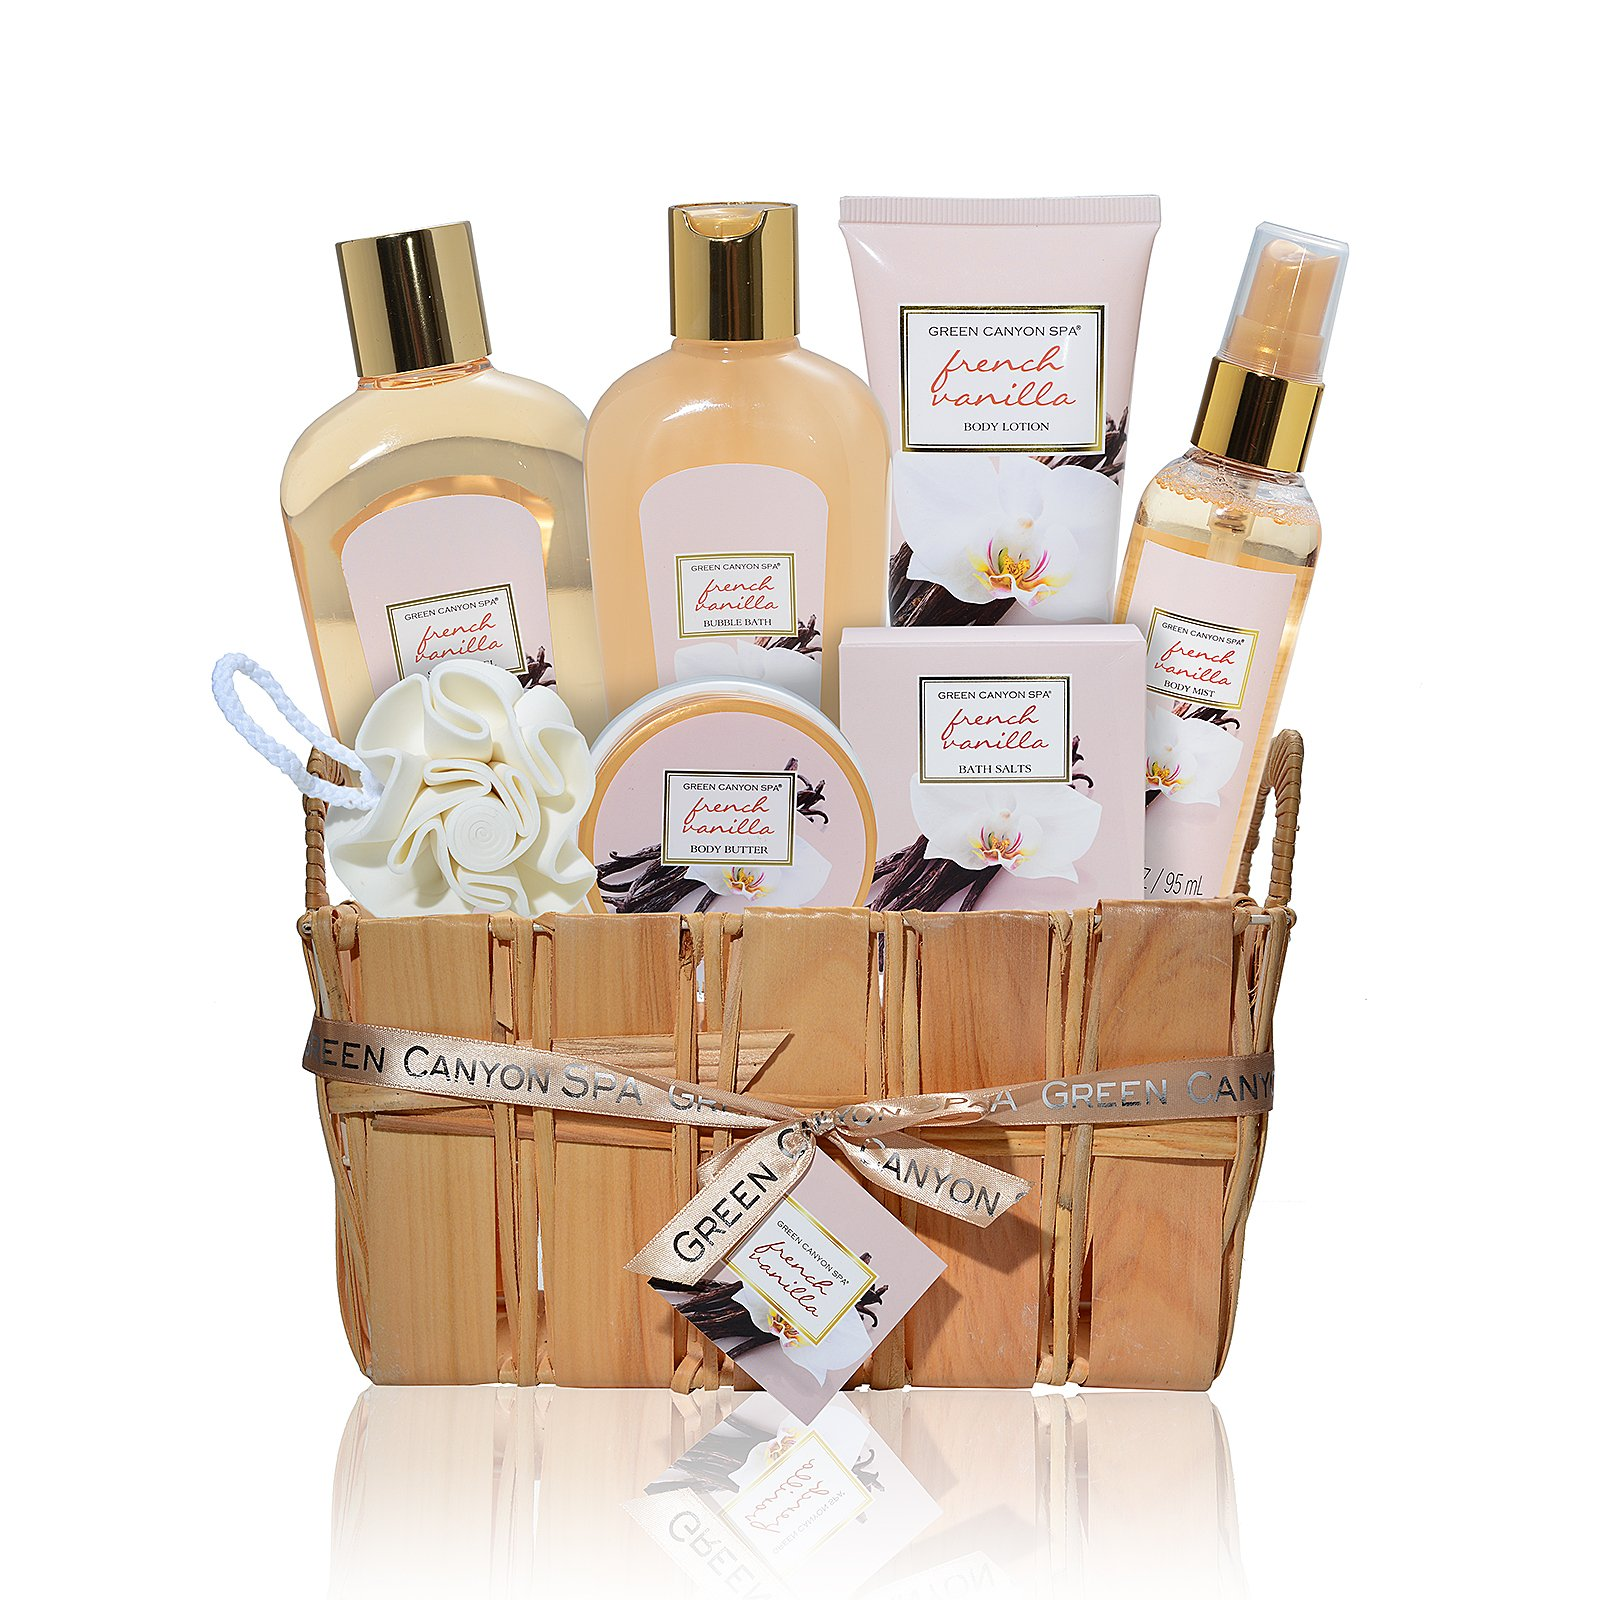 Gift Baskets for Women, Green Canyon Spa Gift Set for Her, 1 Bath & Body Gifts for Women, Luxurious French Vanilla 8 pc set, Best Gift Ideas for Her, Great Wedding, Anniversary, Mothers day Gifts